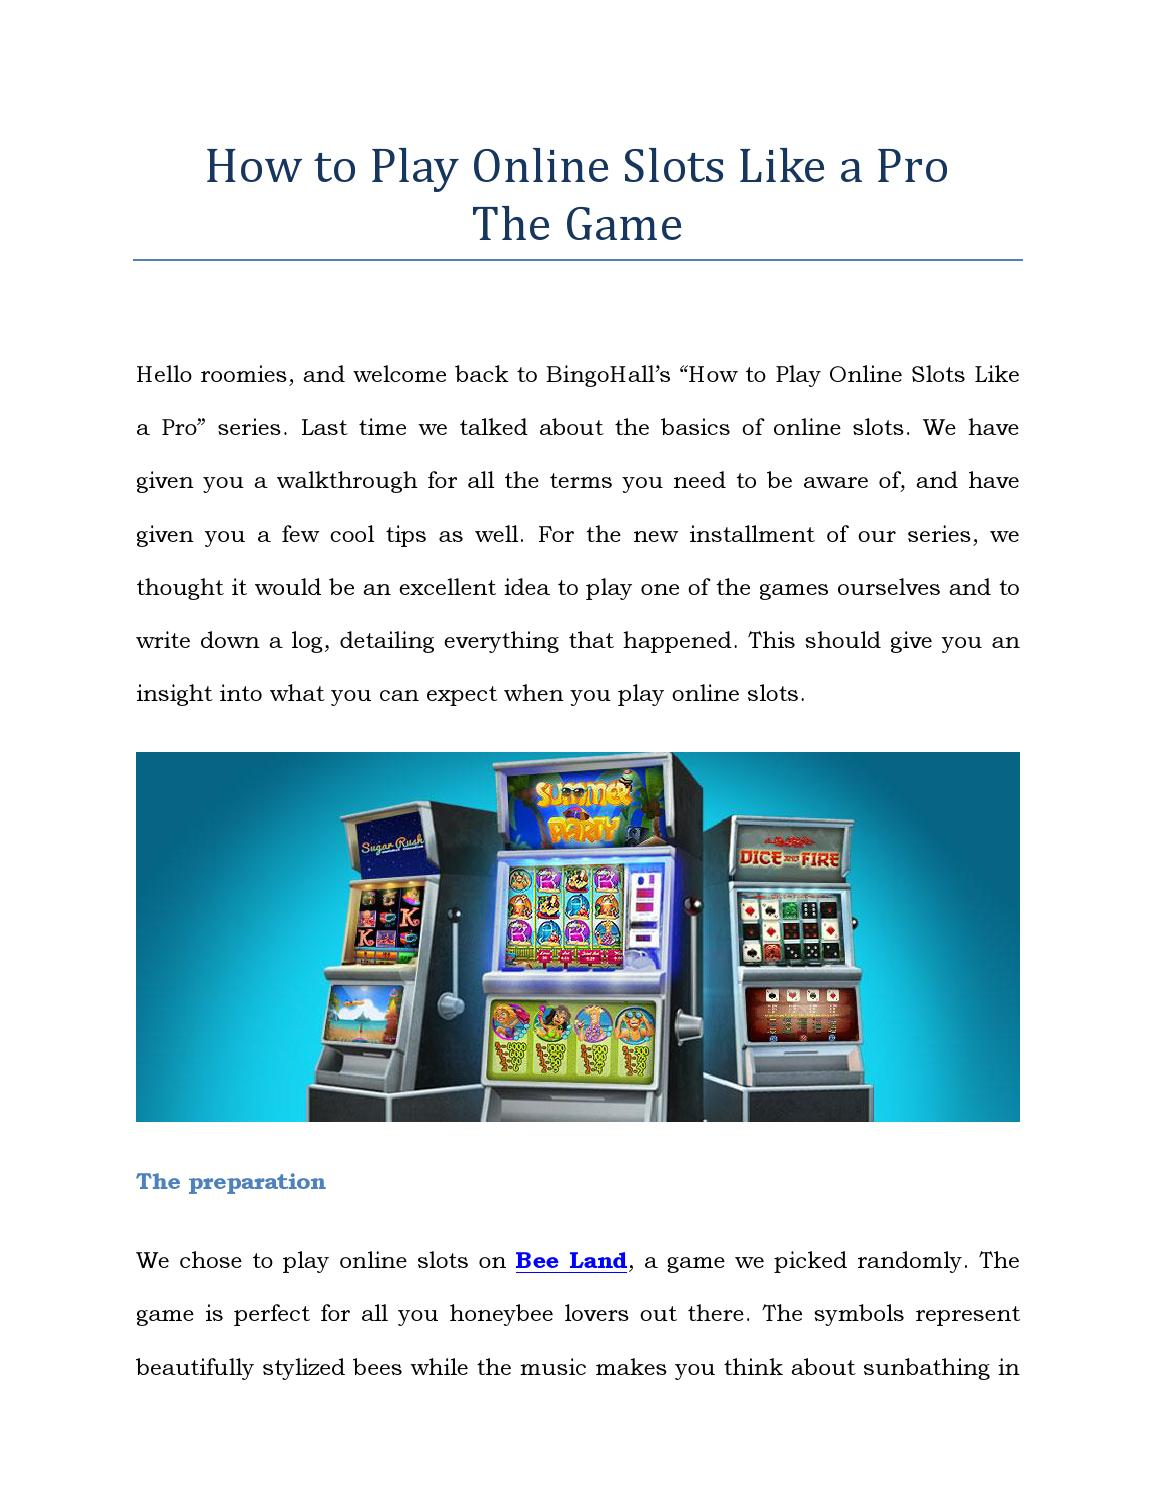 Slot phone installment payment synchrony bank